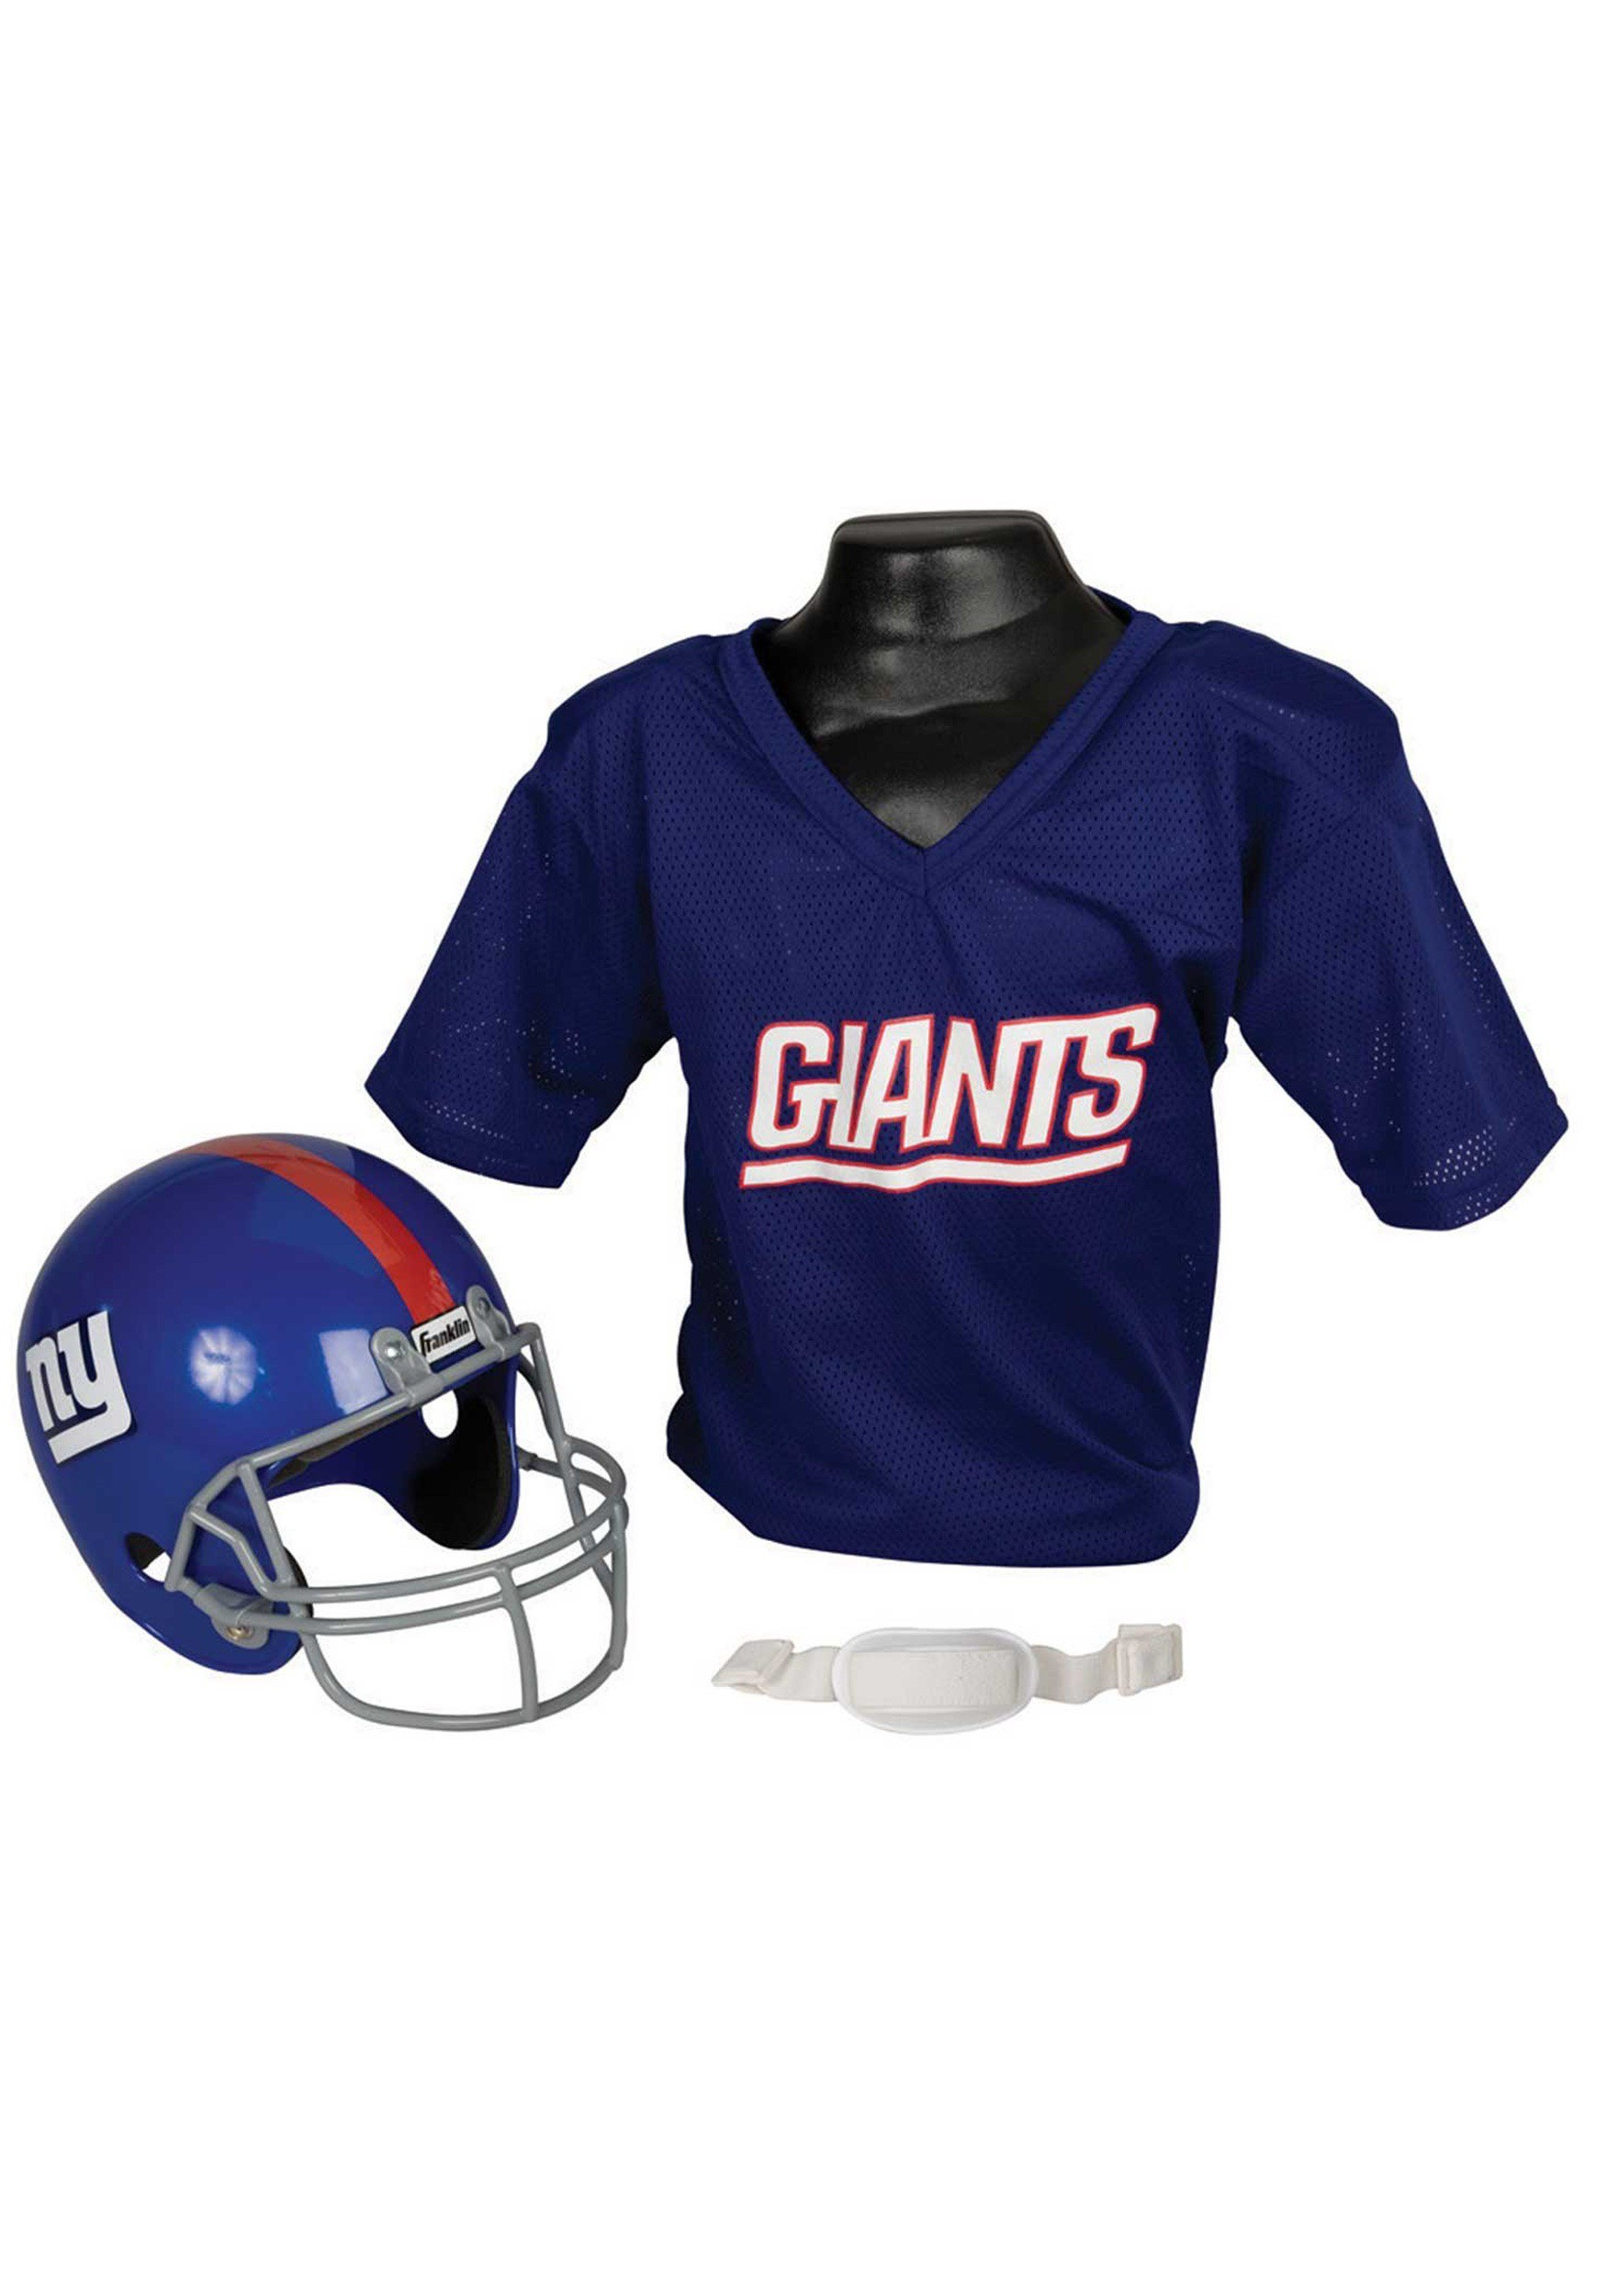 ec9511b0 Child NFL New York Giants Helmet and Jersey Costume Set